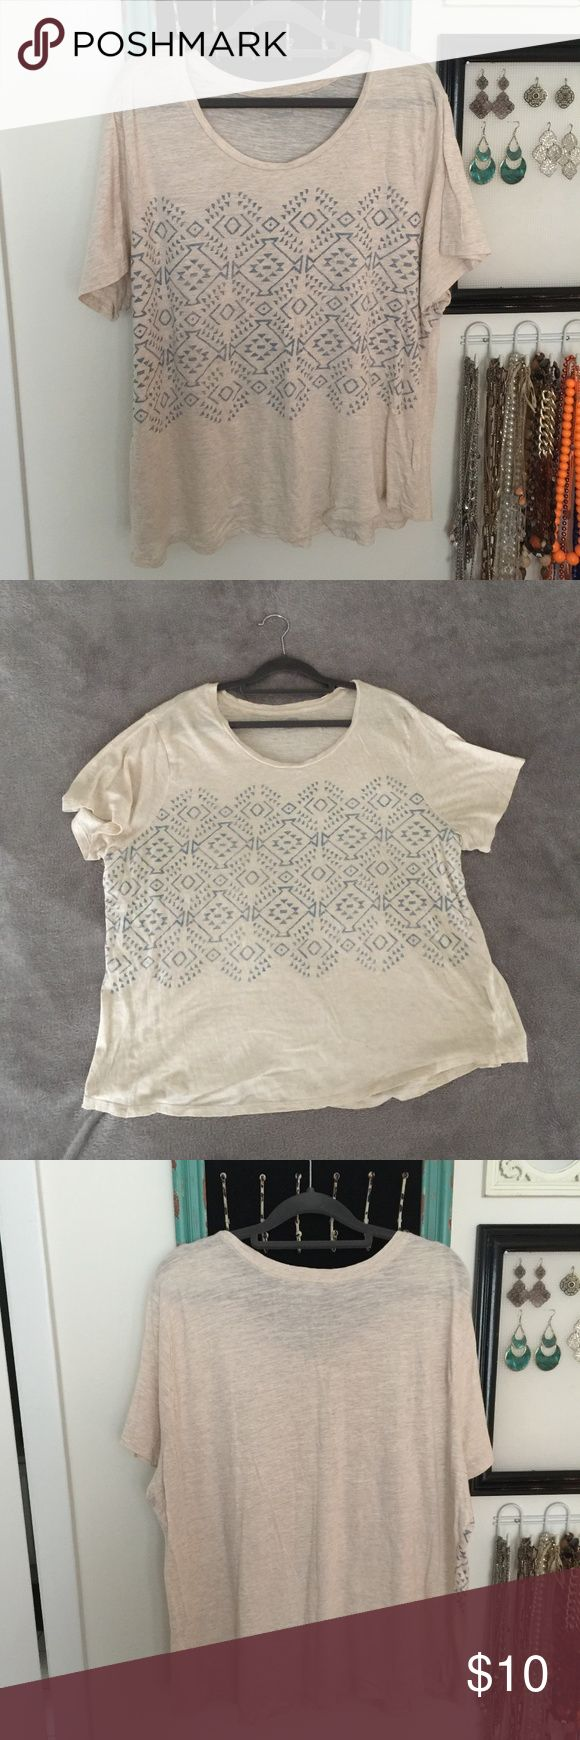 Old Navy Cream and Silver Geometric T-shirt Old Navy Cream and Silver Geometric short-sleeved T-shirt, Size XXL, the overall length has shrunk a bit from washing, only worn a few times Old Navy Tops Tees - Short Sleeve